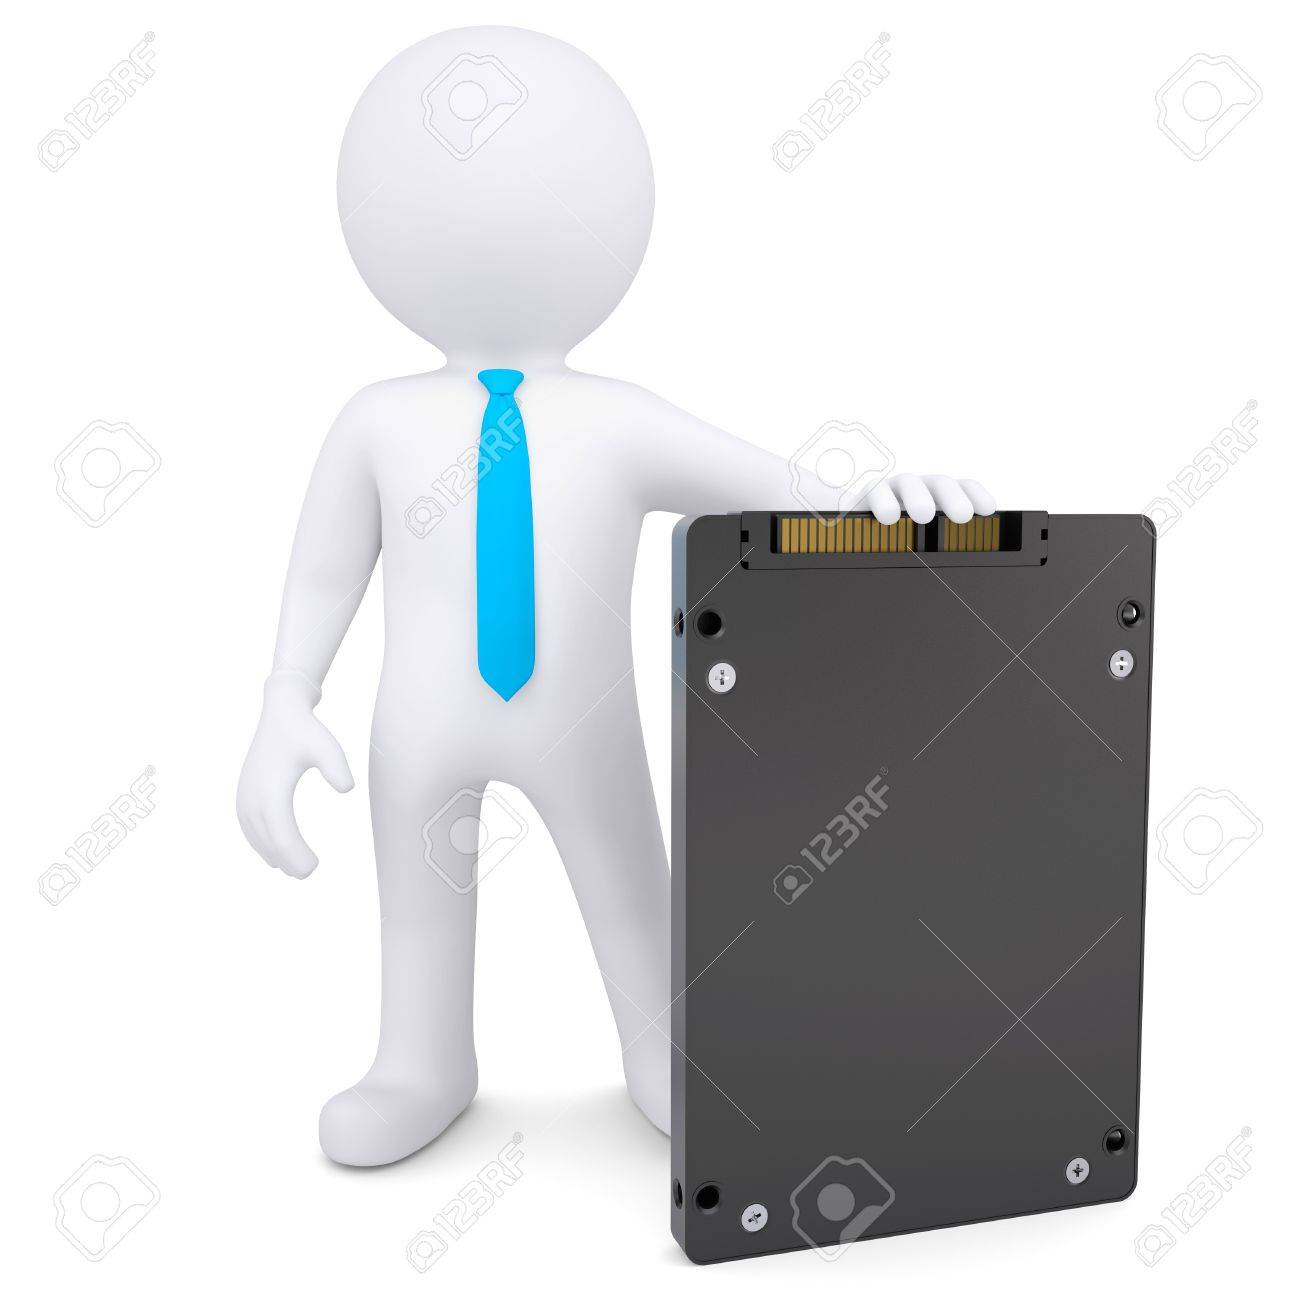 3d white man holding a solid state drive  Isolated render on a white background Stock Photo - 19972042